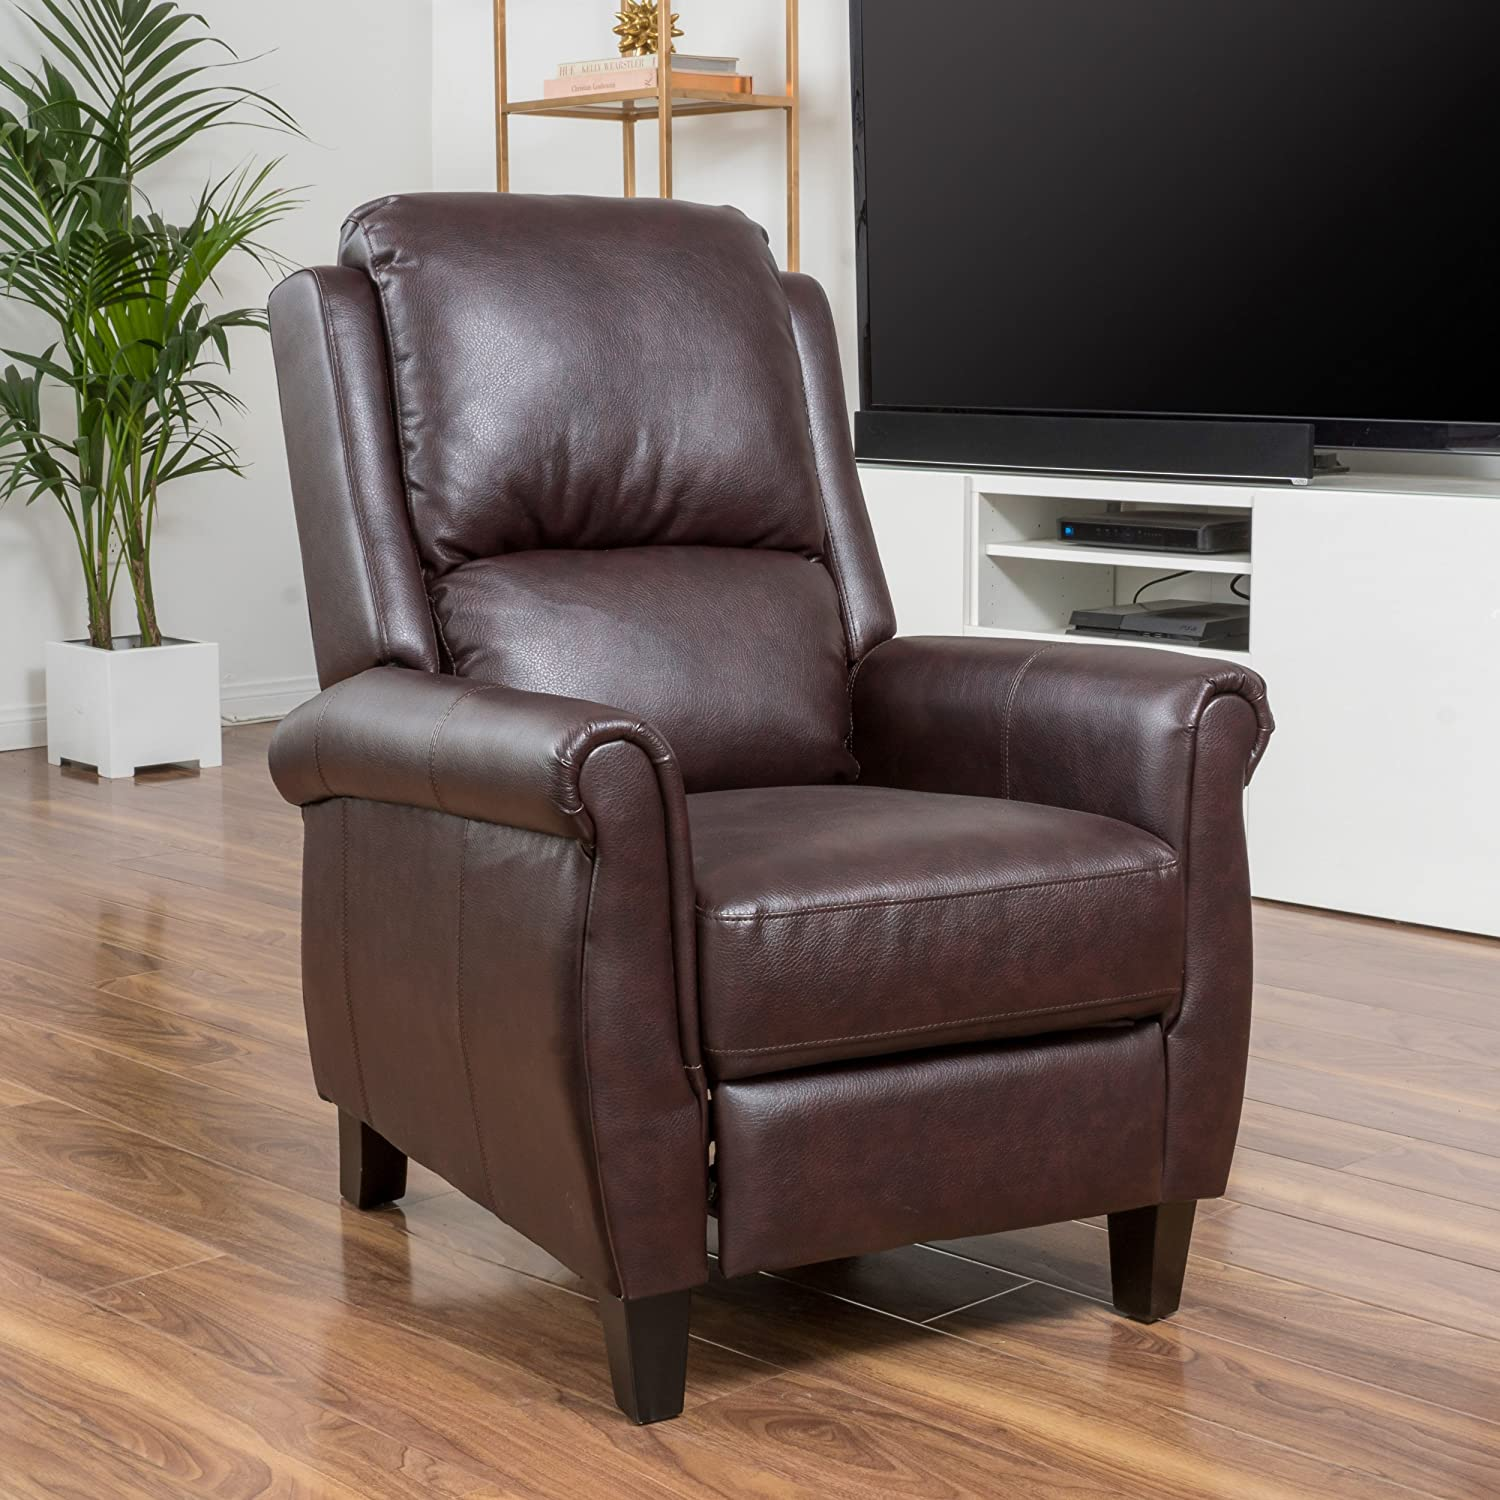 Amazon.com : Denise Austin Home Memphis PU Leather Recliner Club Chair :  Garden U0026 Outdoor